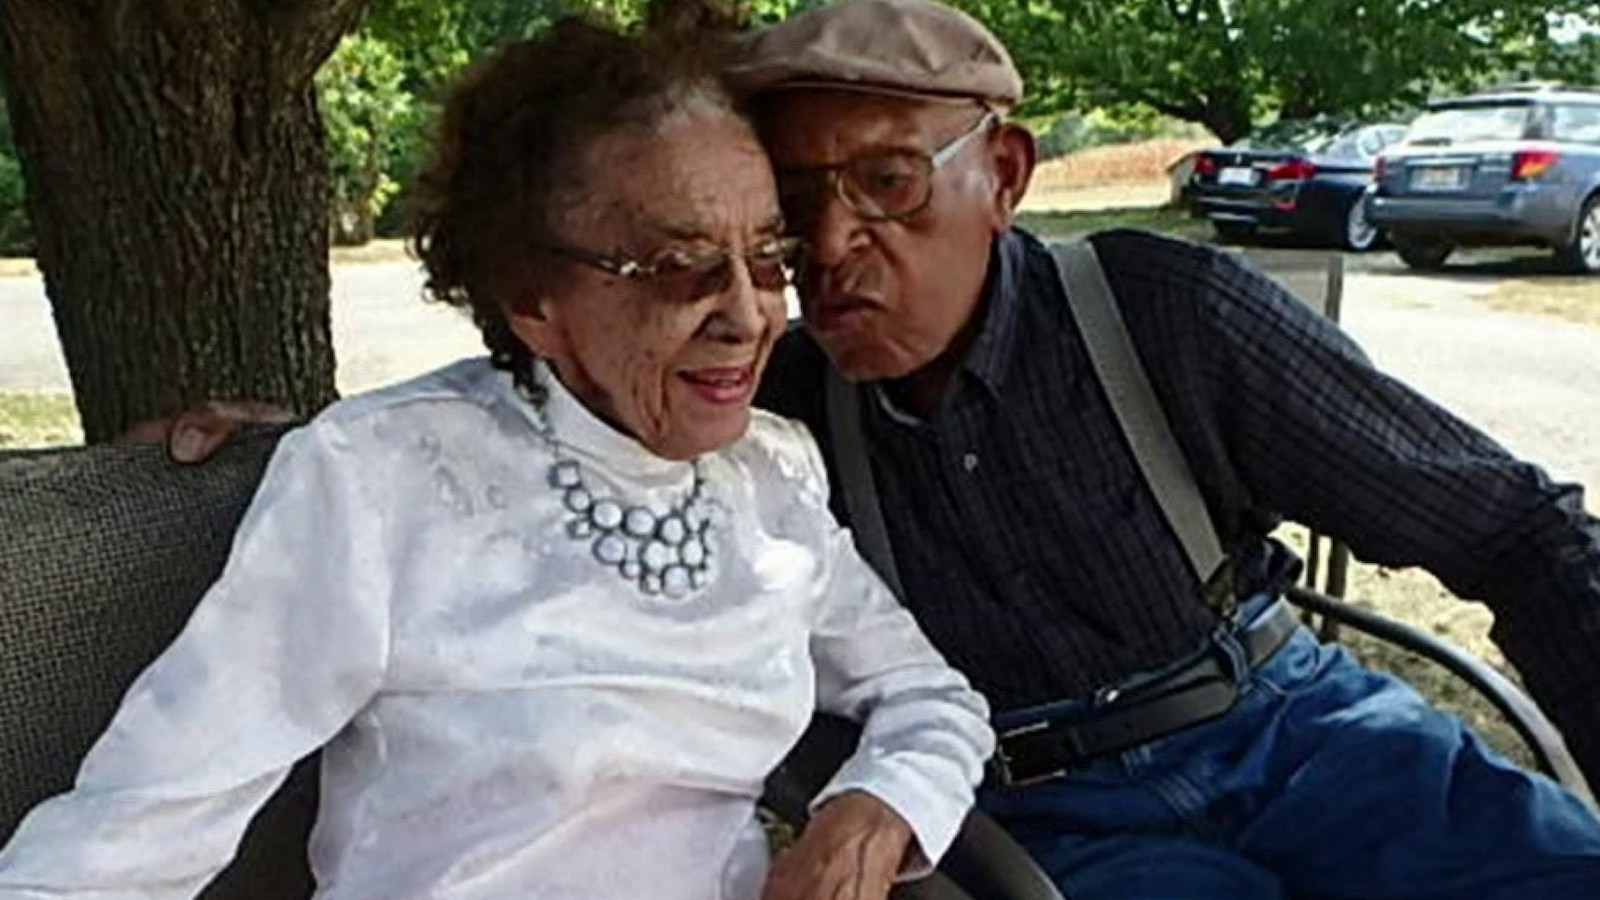 Black Love, African American Couple, Black Couple, Oldest Living Couple, Longest Marriage, KOLUMN Magazine, KOLUMN, KINDR'D Magazine, KINDR'D, Willoughby Avenue, Wriit,